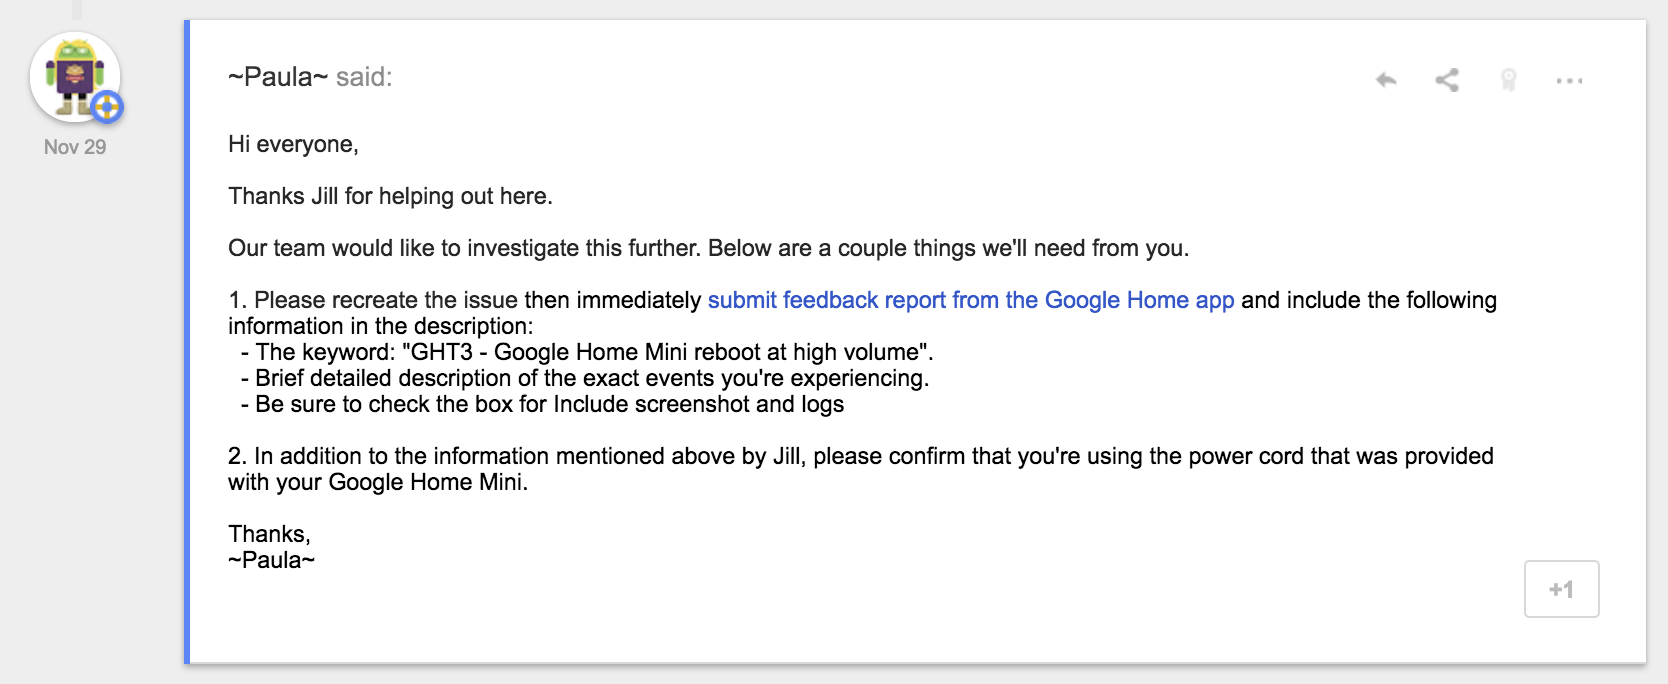 Amazing Google Is Aware Of The Issue And Recommends People Experiencing It To  Submit A Feedback Report Through The Google Home App With The Information  Above.